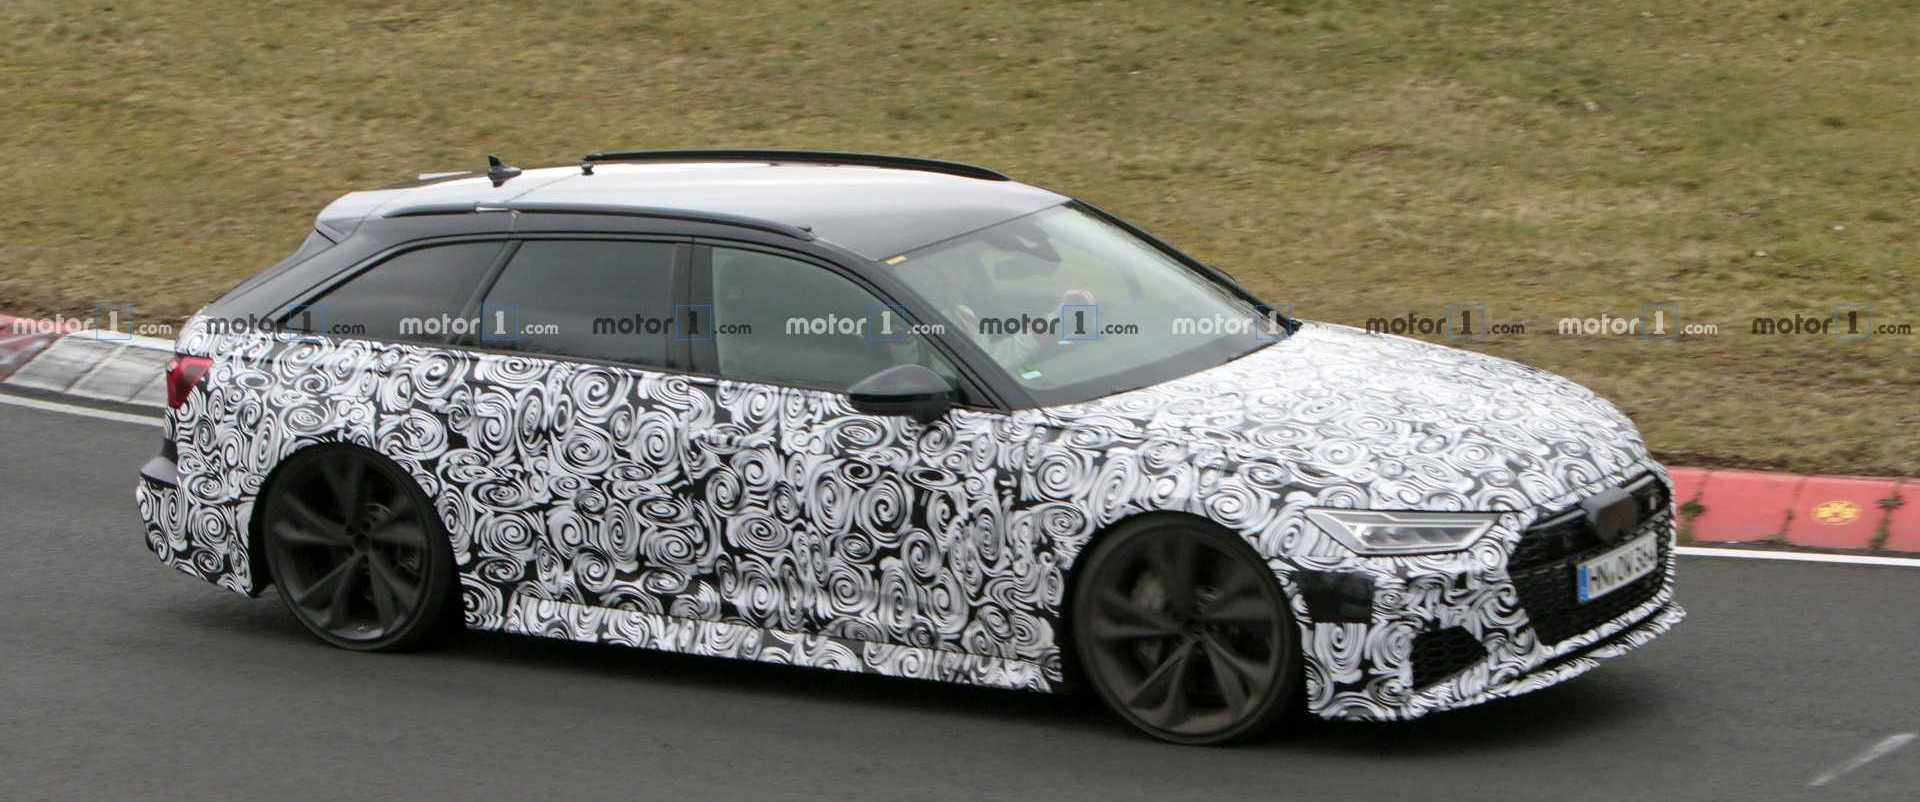 Audi RS6 Avant Spy Video Shows The Wicked Wagon Wandering The Streets